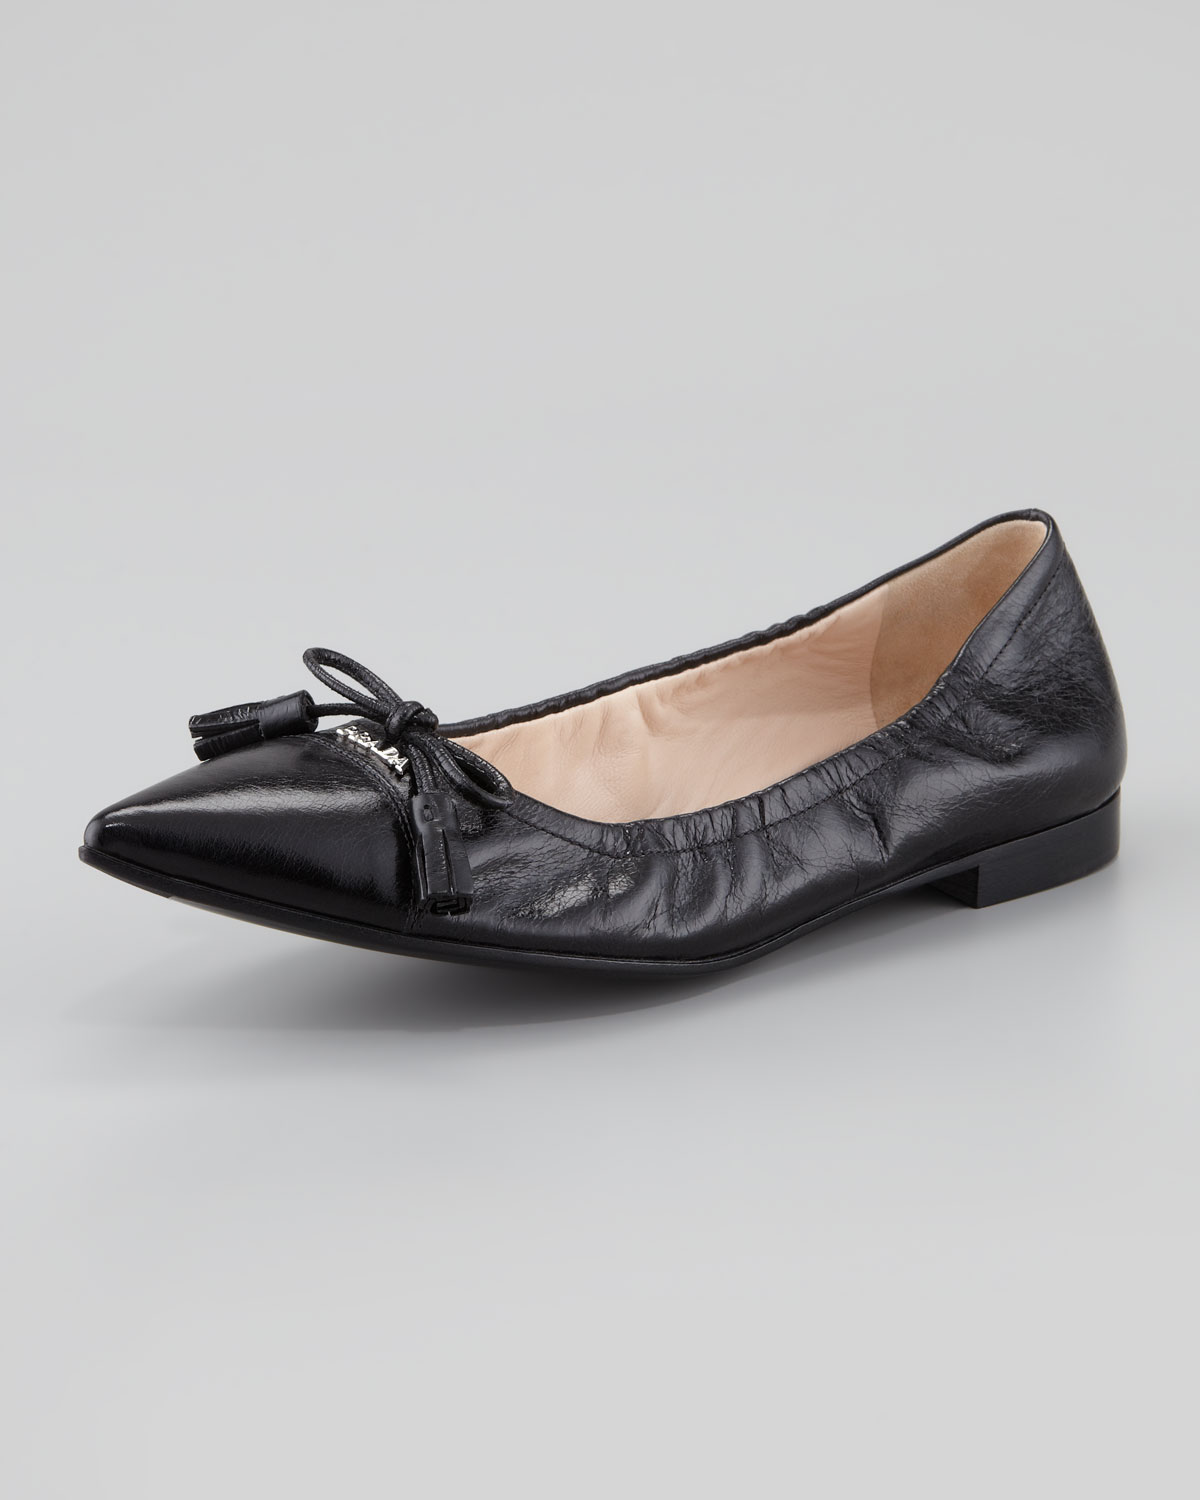 Prada Buckle Pointed-Toe Flats